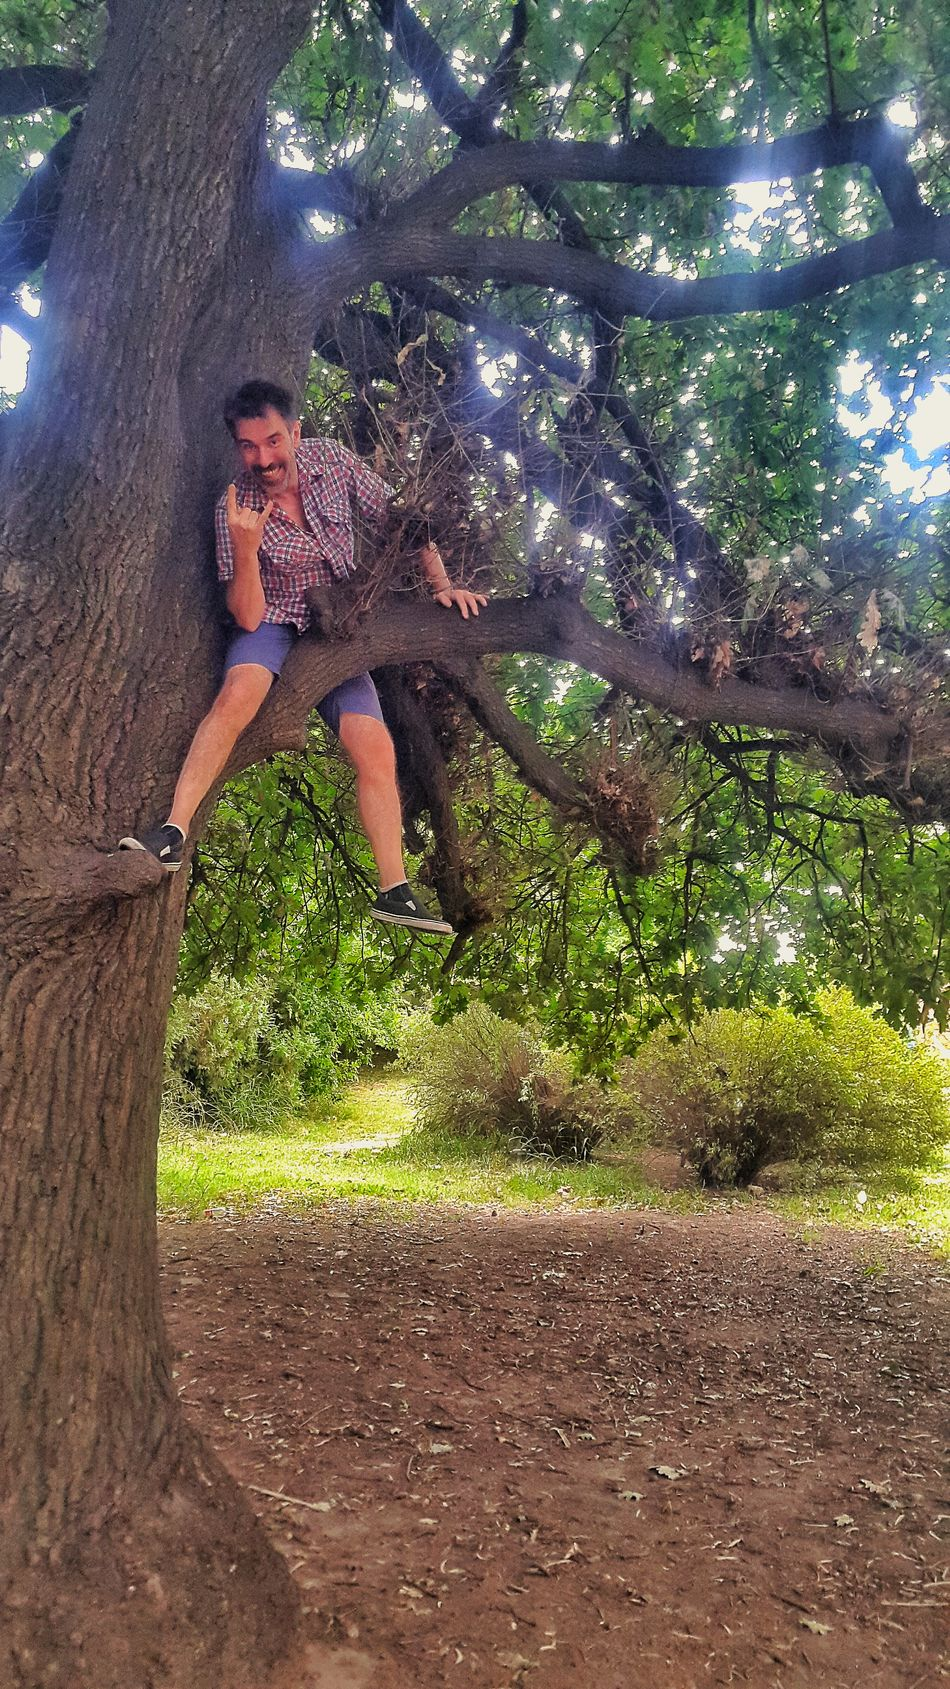 Climbing a tree part 4 Healthy Lifestyle Healthy Peoplephotography People Photography People Street Photo Streetphotography Buenos Aires, Argentina  Street Photography Climbing A Tree Climbing Climbing Trees EyeEm Buenos Aires Healthy People  Healthylife